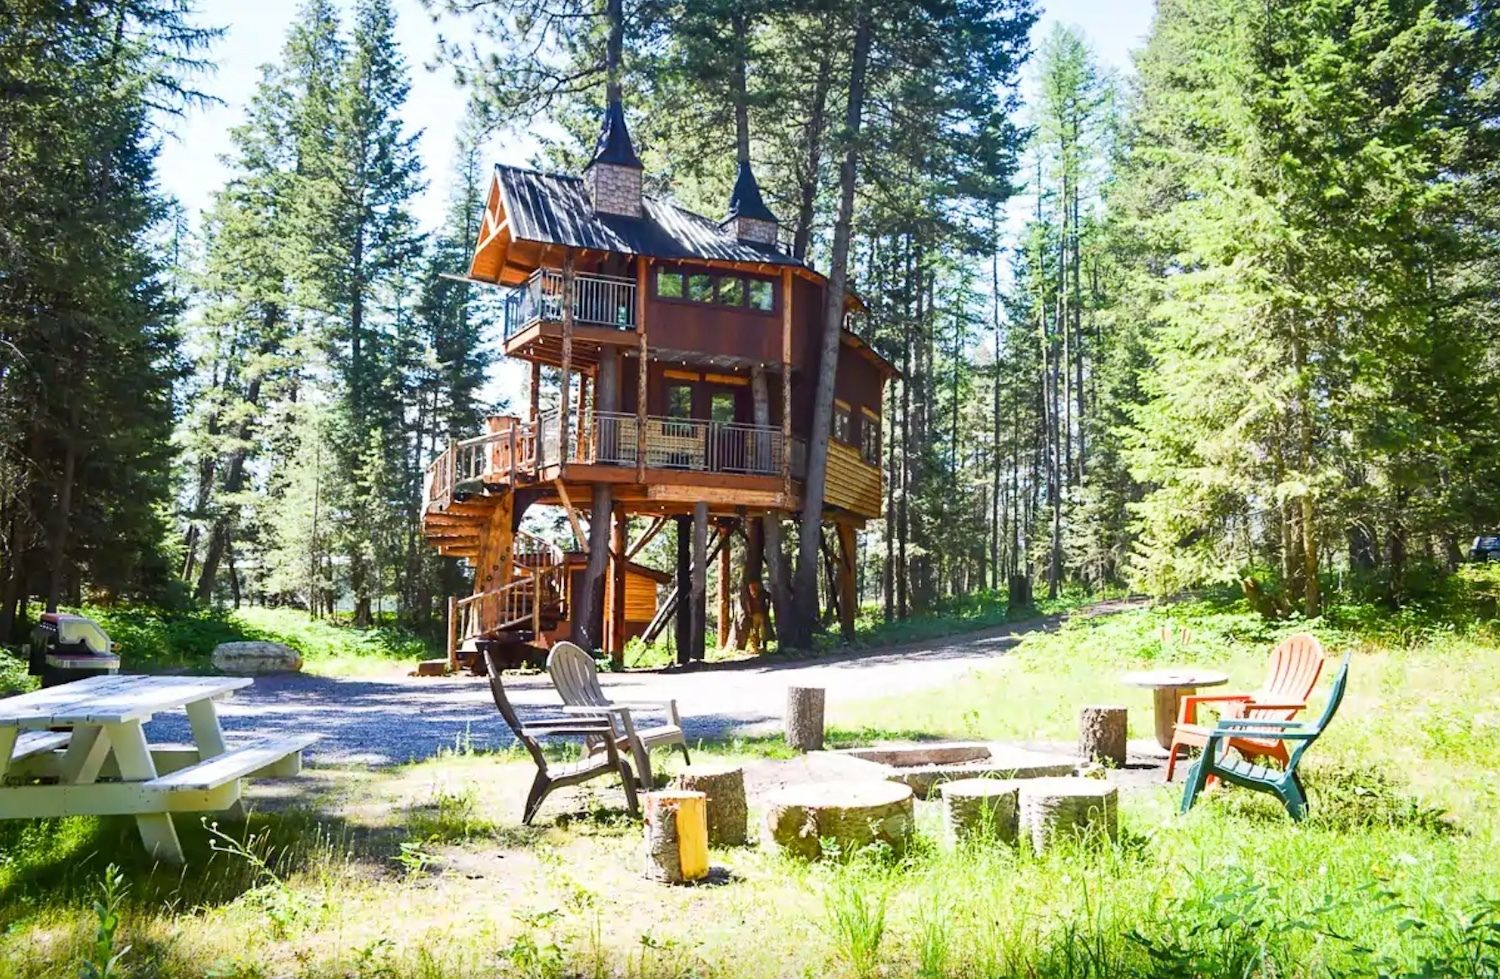 Exterior-meadowlark-treehouse-most-wishlisted-airbnbs-in-the-pacific-northwest